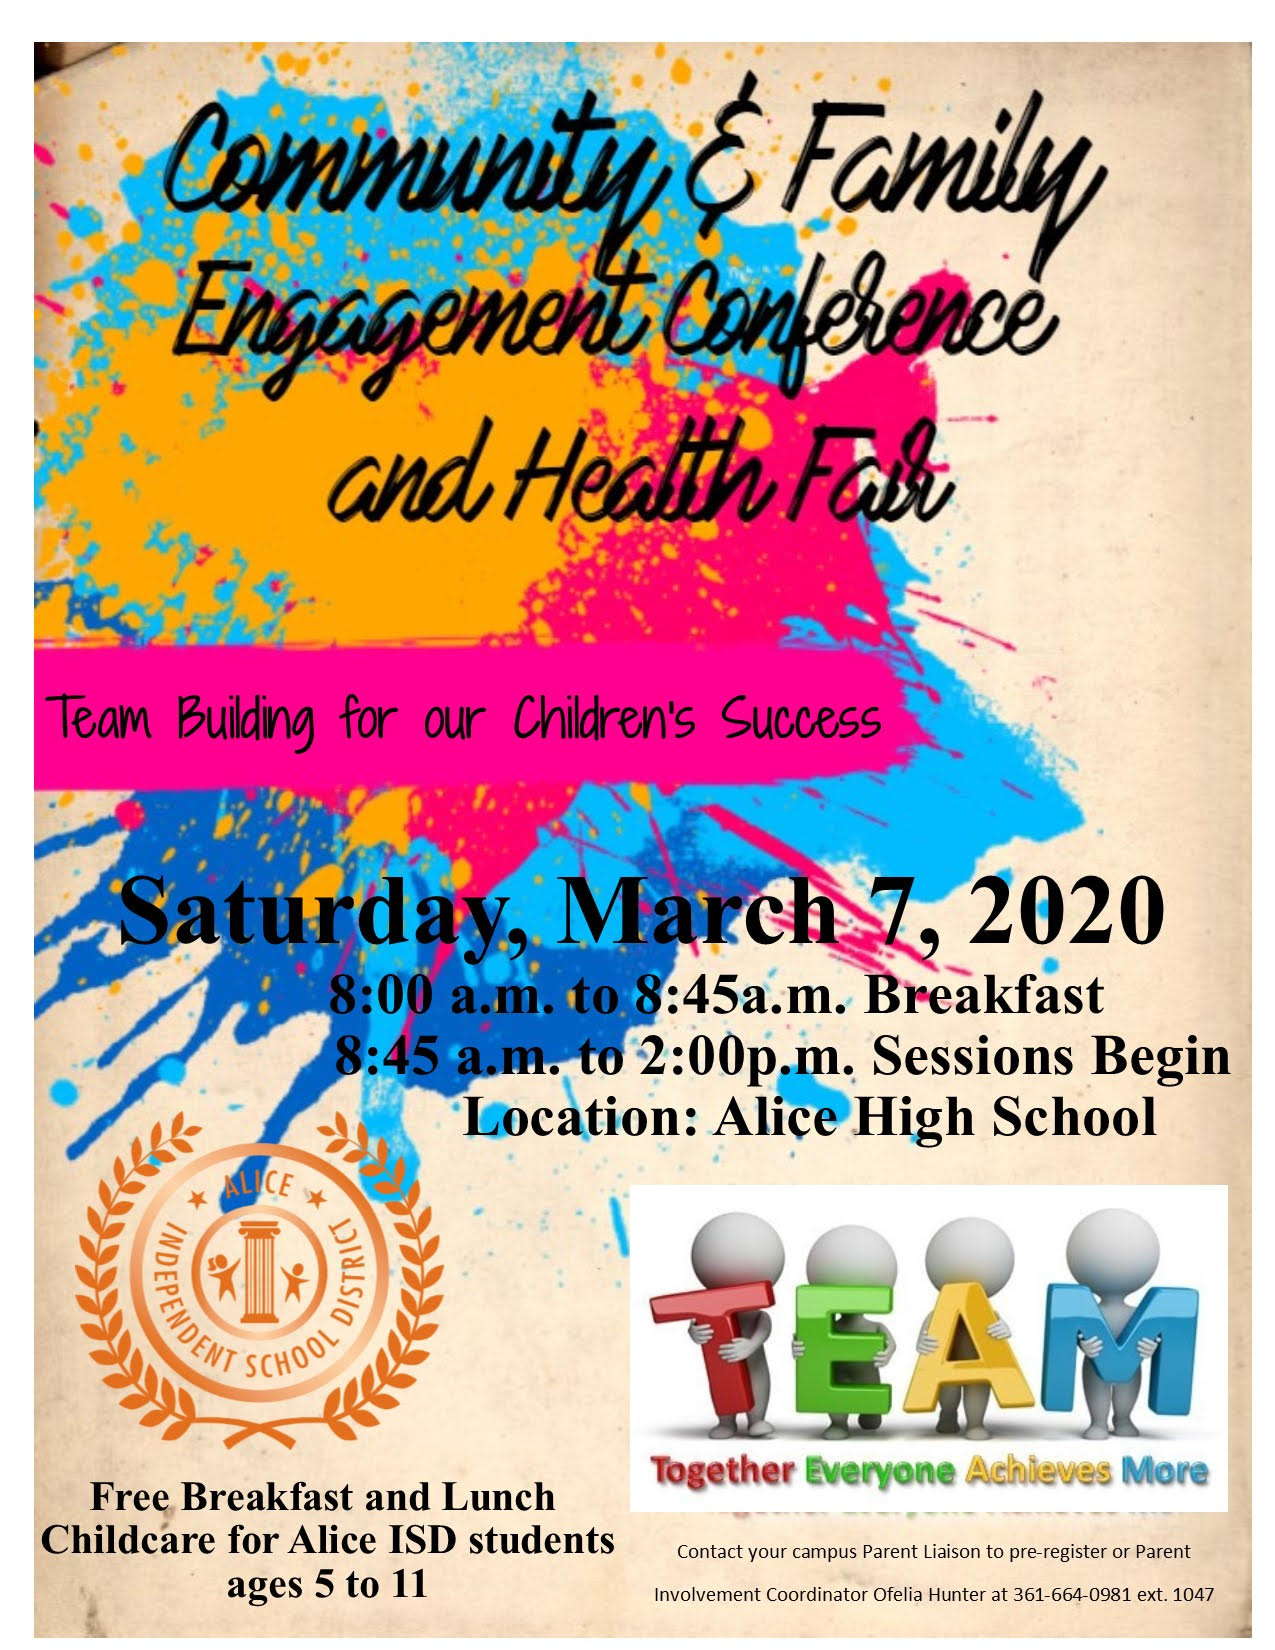 Community & Family Engagement Conference and Health Fair